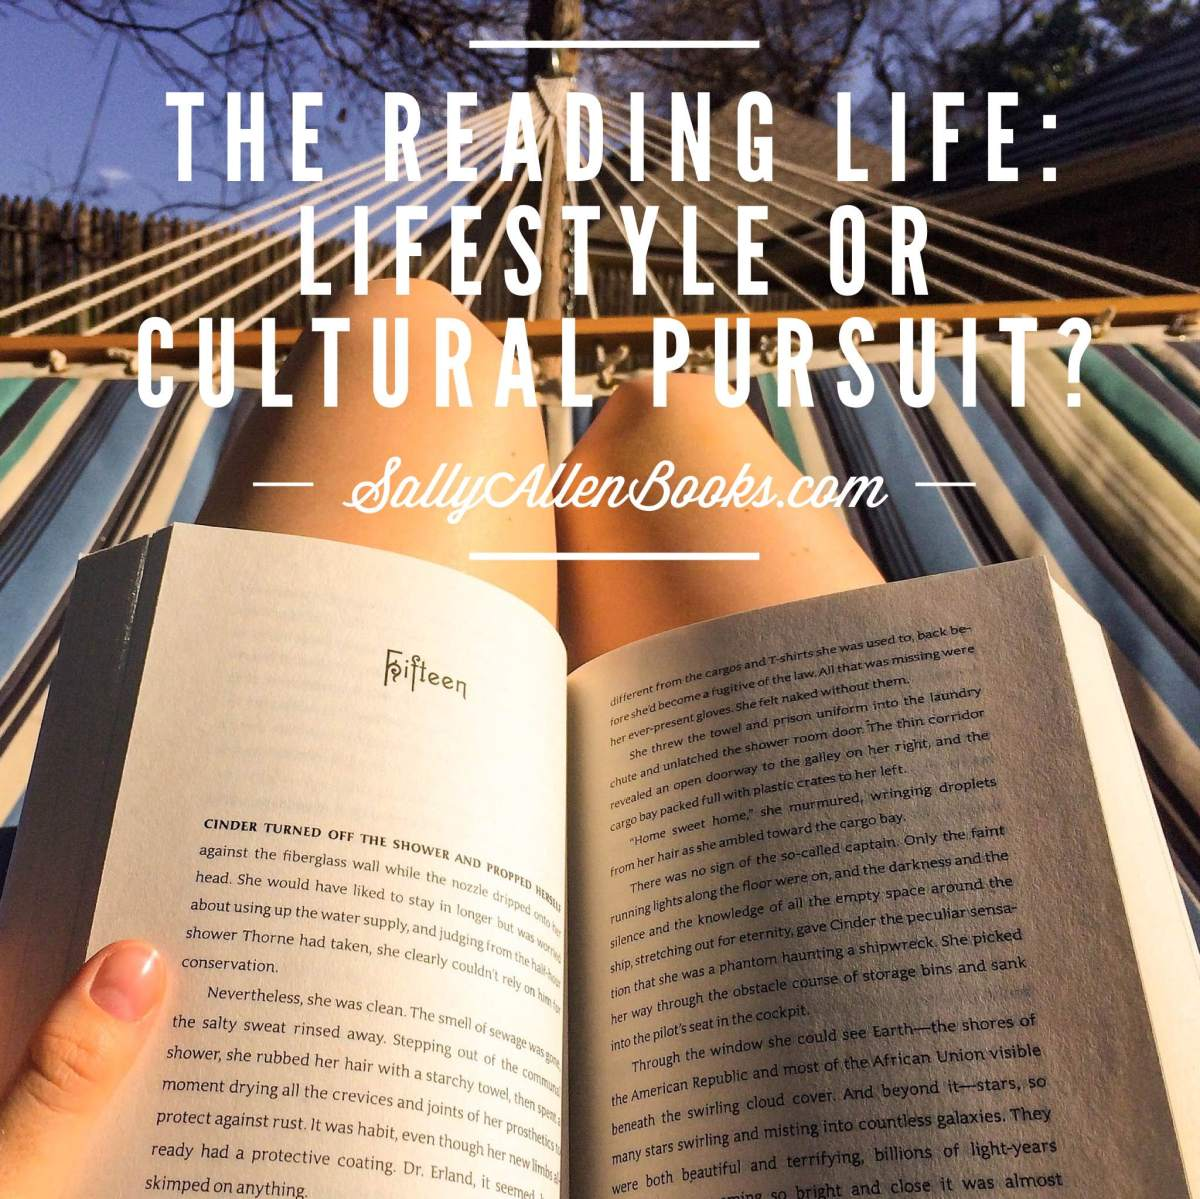 The Reading Life: Lifestyle or cultural pursuit?